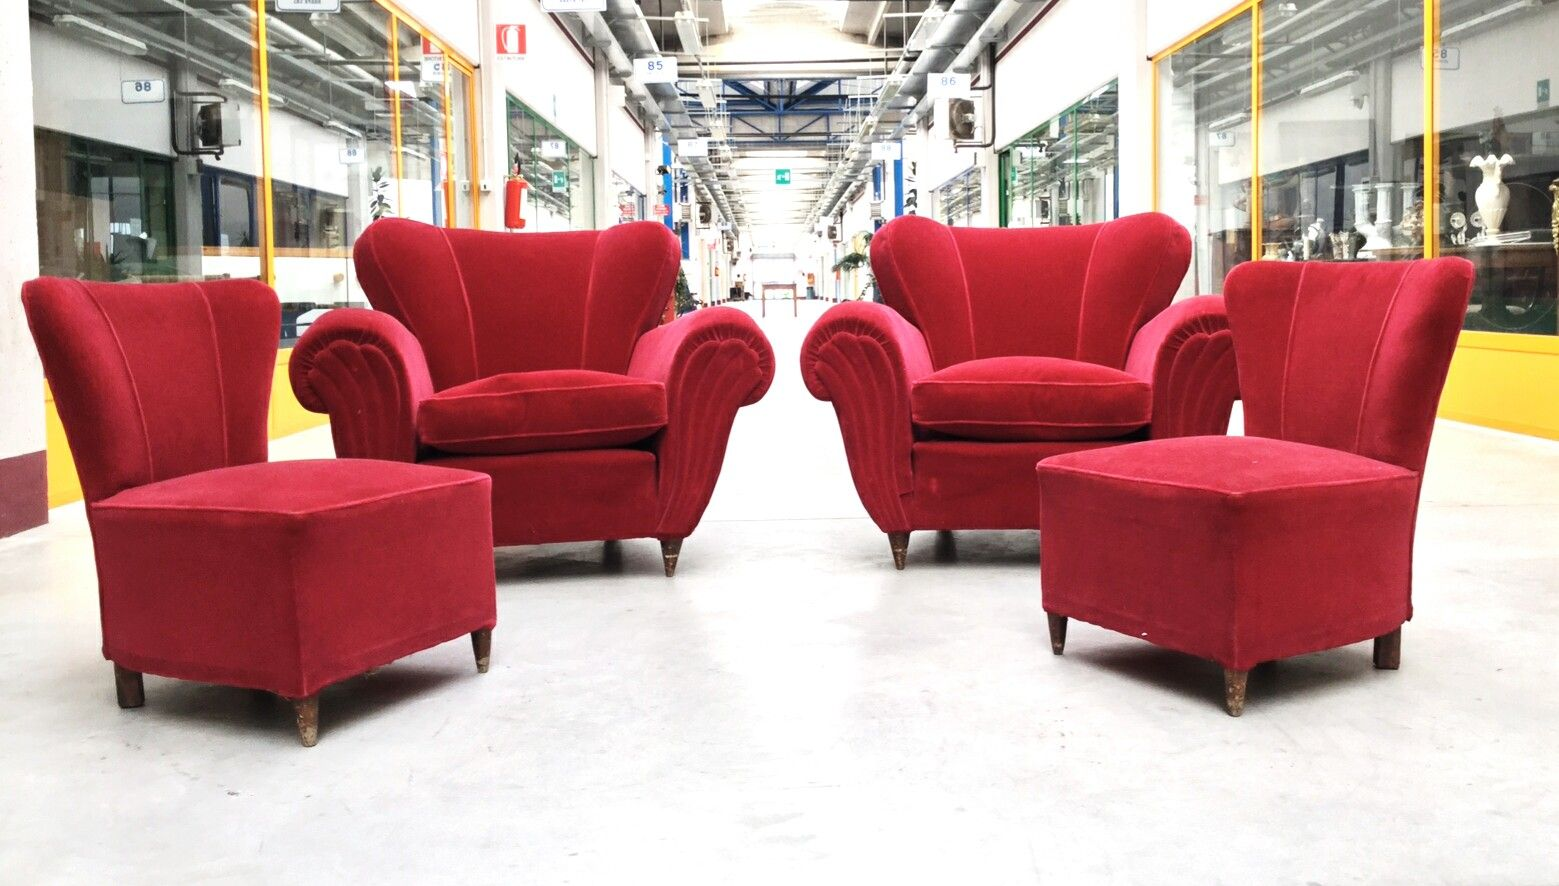 Red velvet chair - Red Velvet Lounge Chairs 1950s Set Of 4